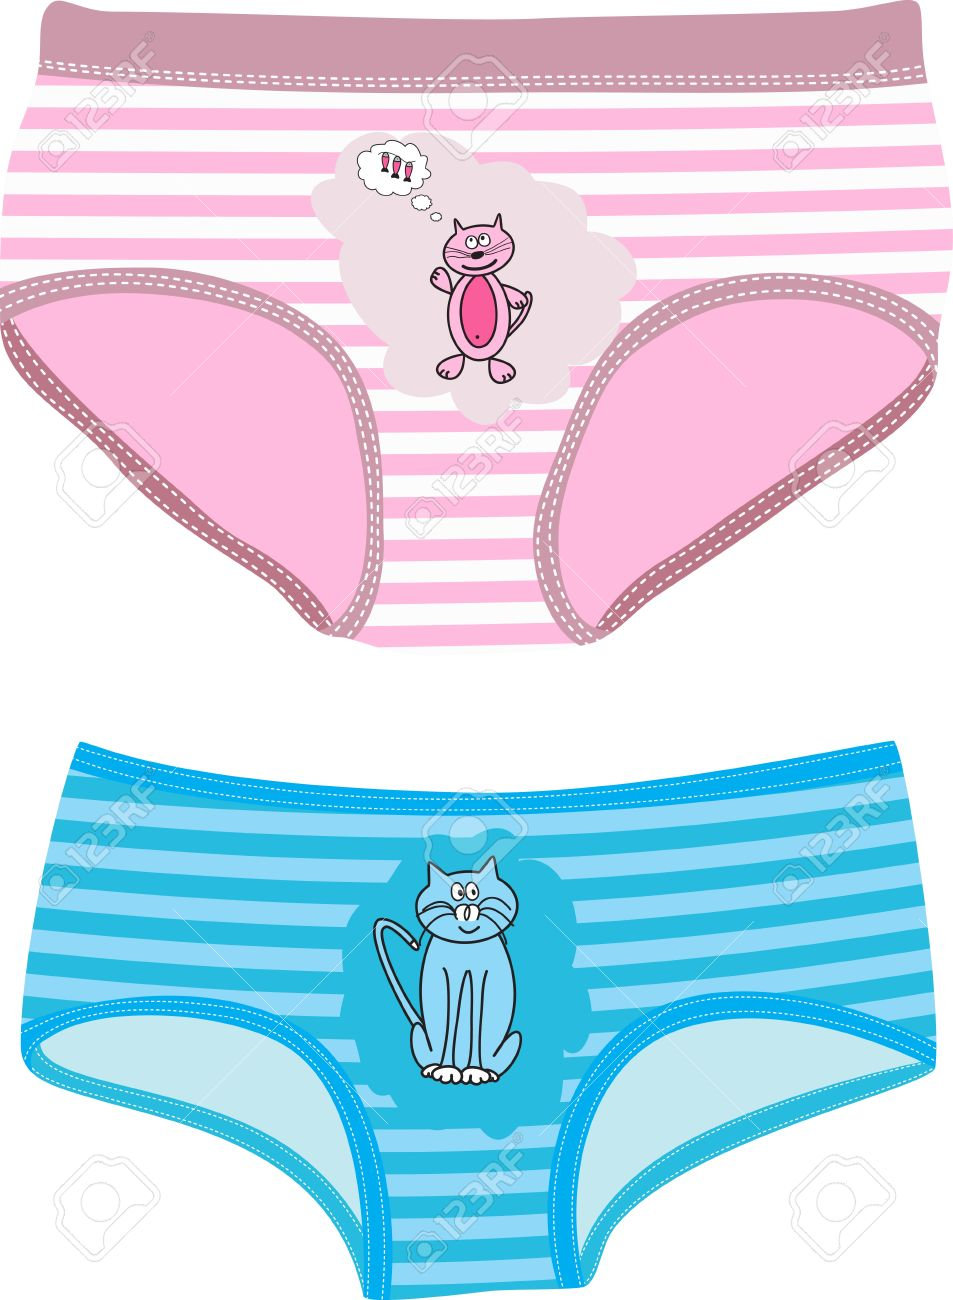 image royalty free download For portal . Kids underwear clipart